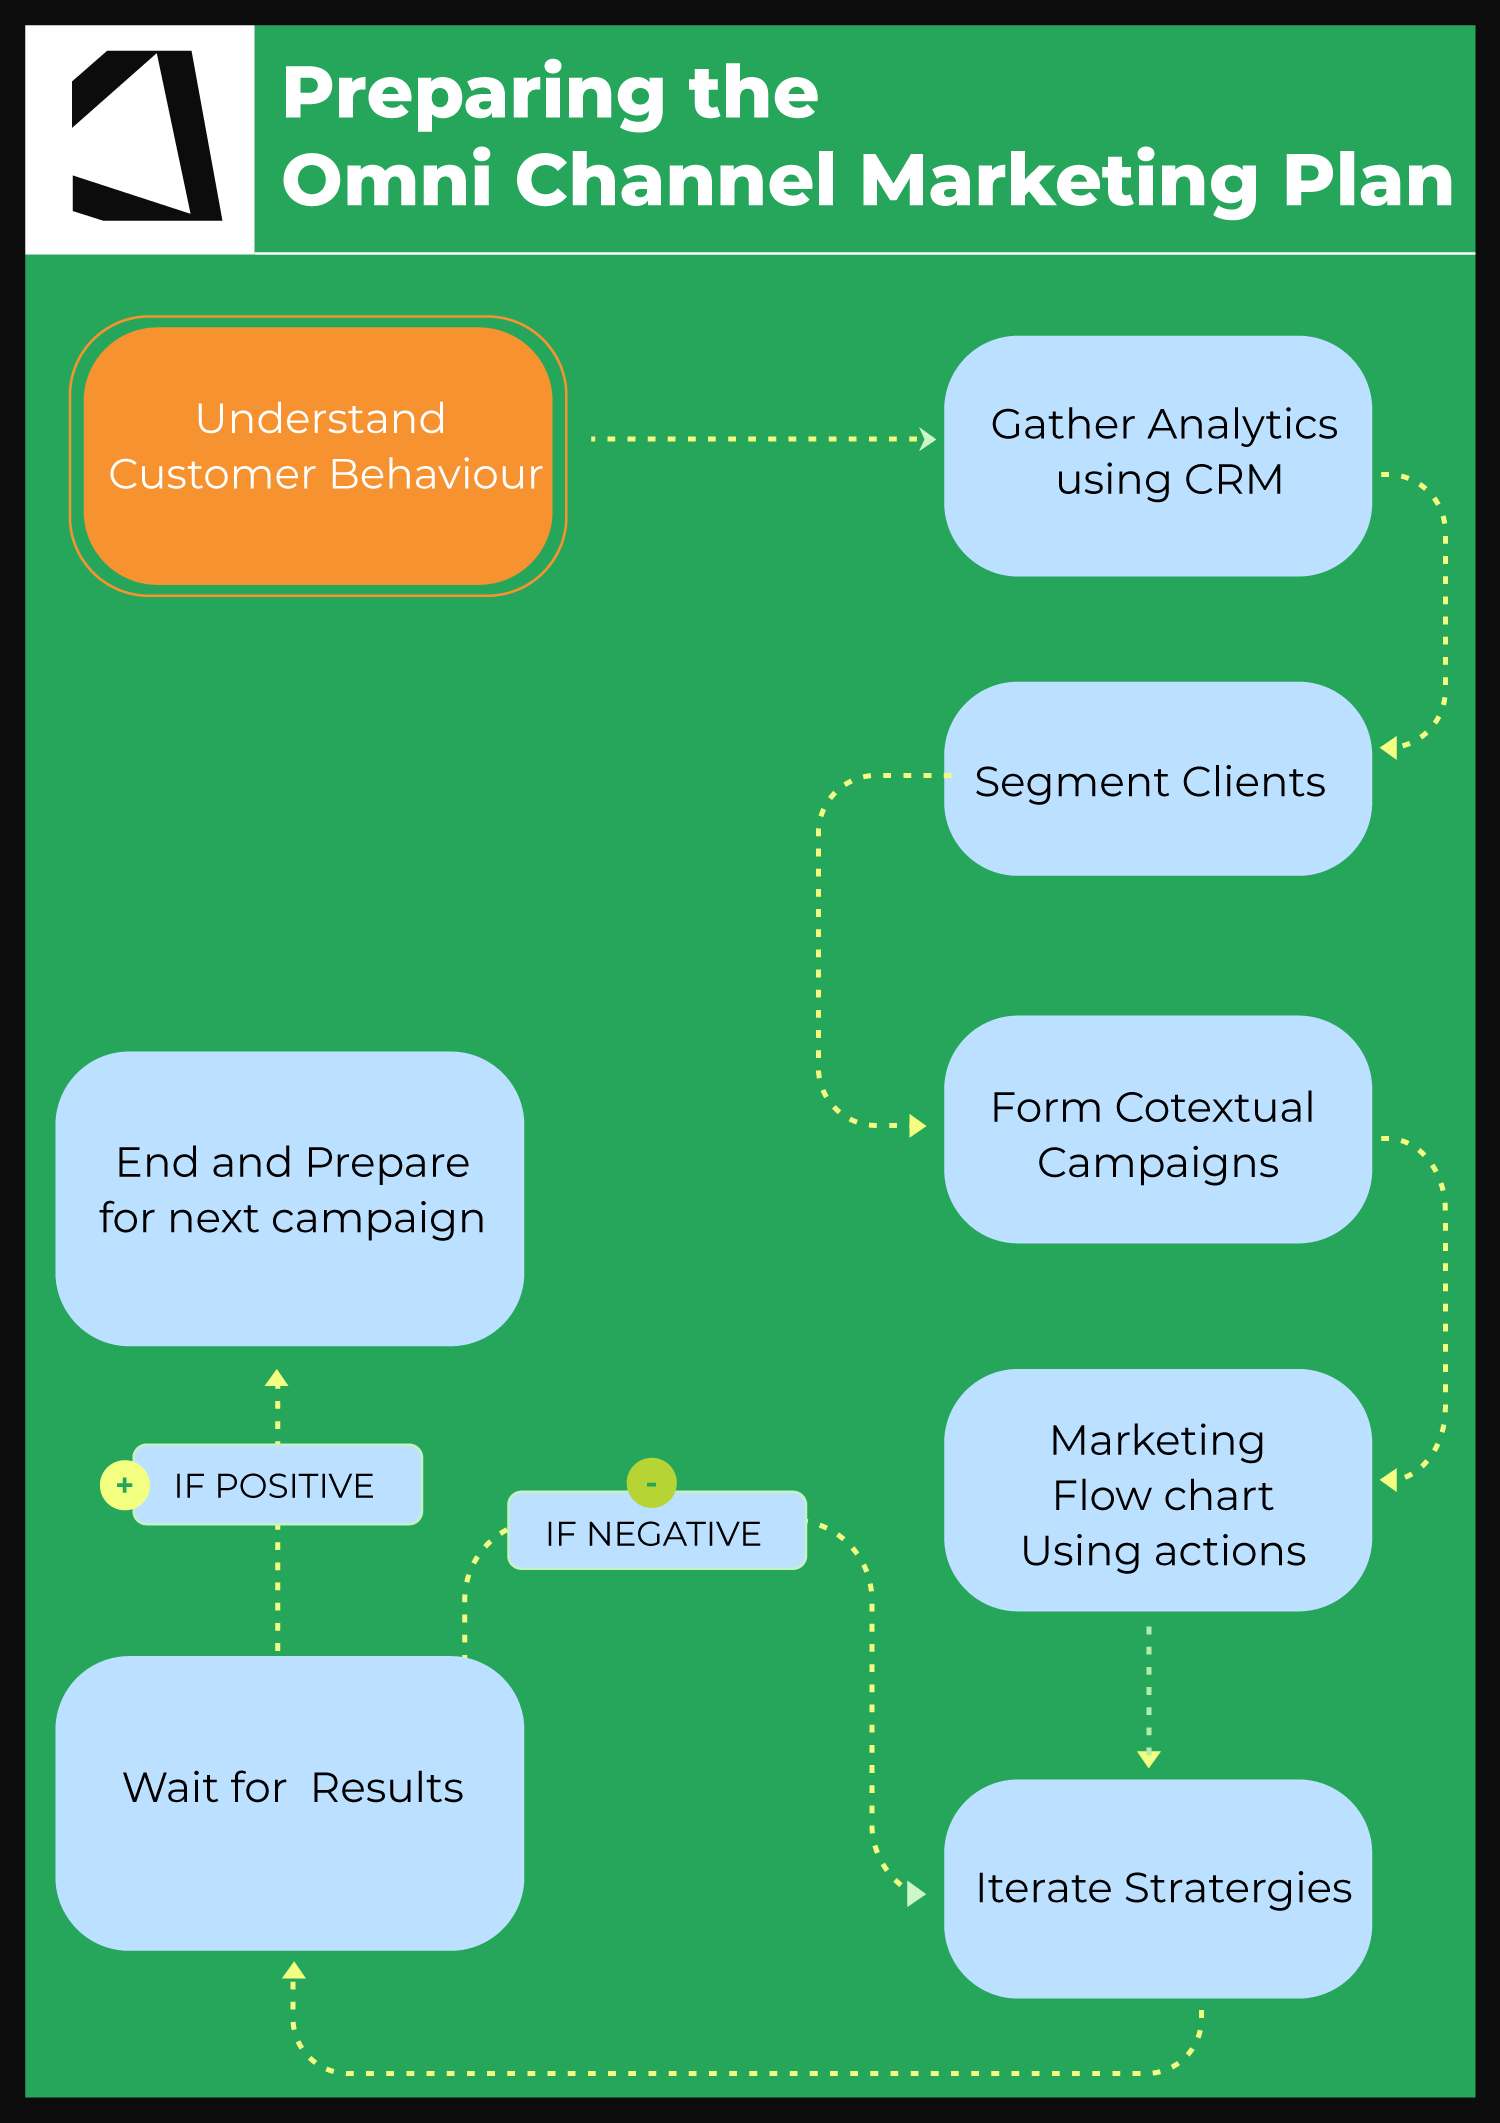 Preparing the OmniChannel Marketing Plan